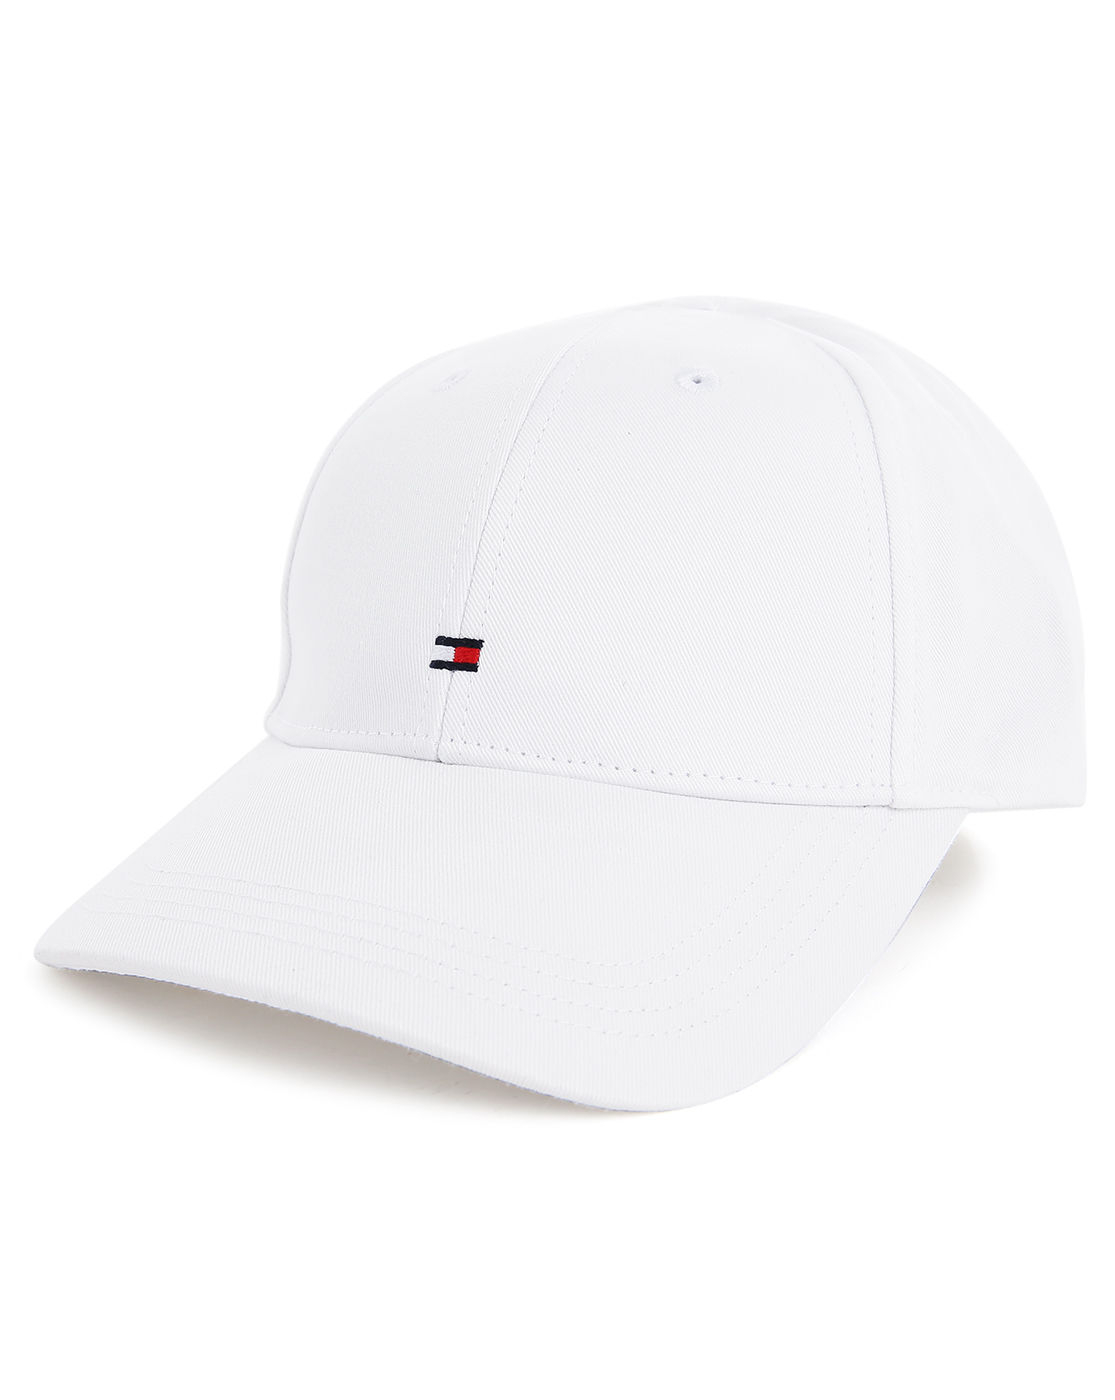 Tommy Hilfiger White Classic Cap In White For Men Lyst